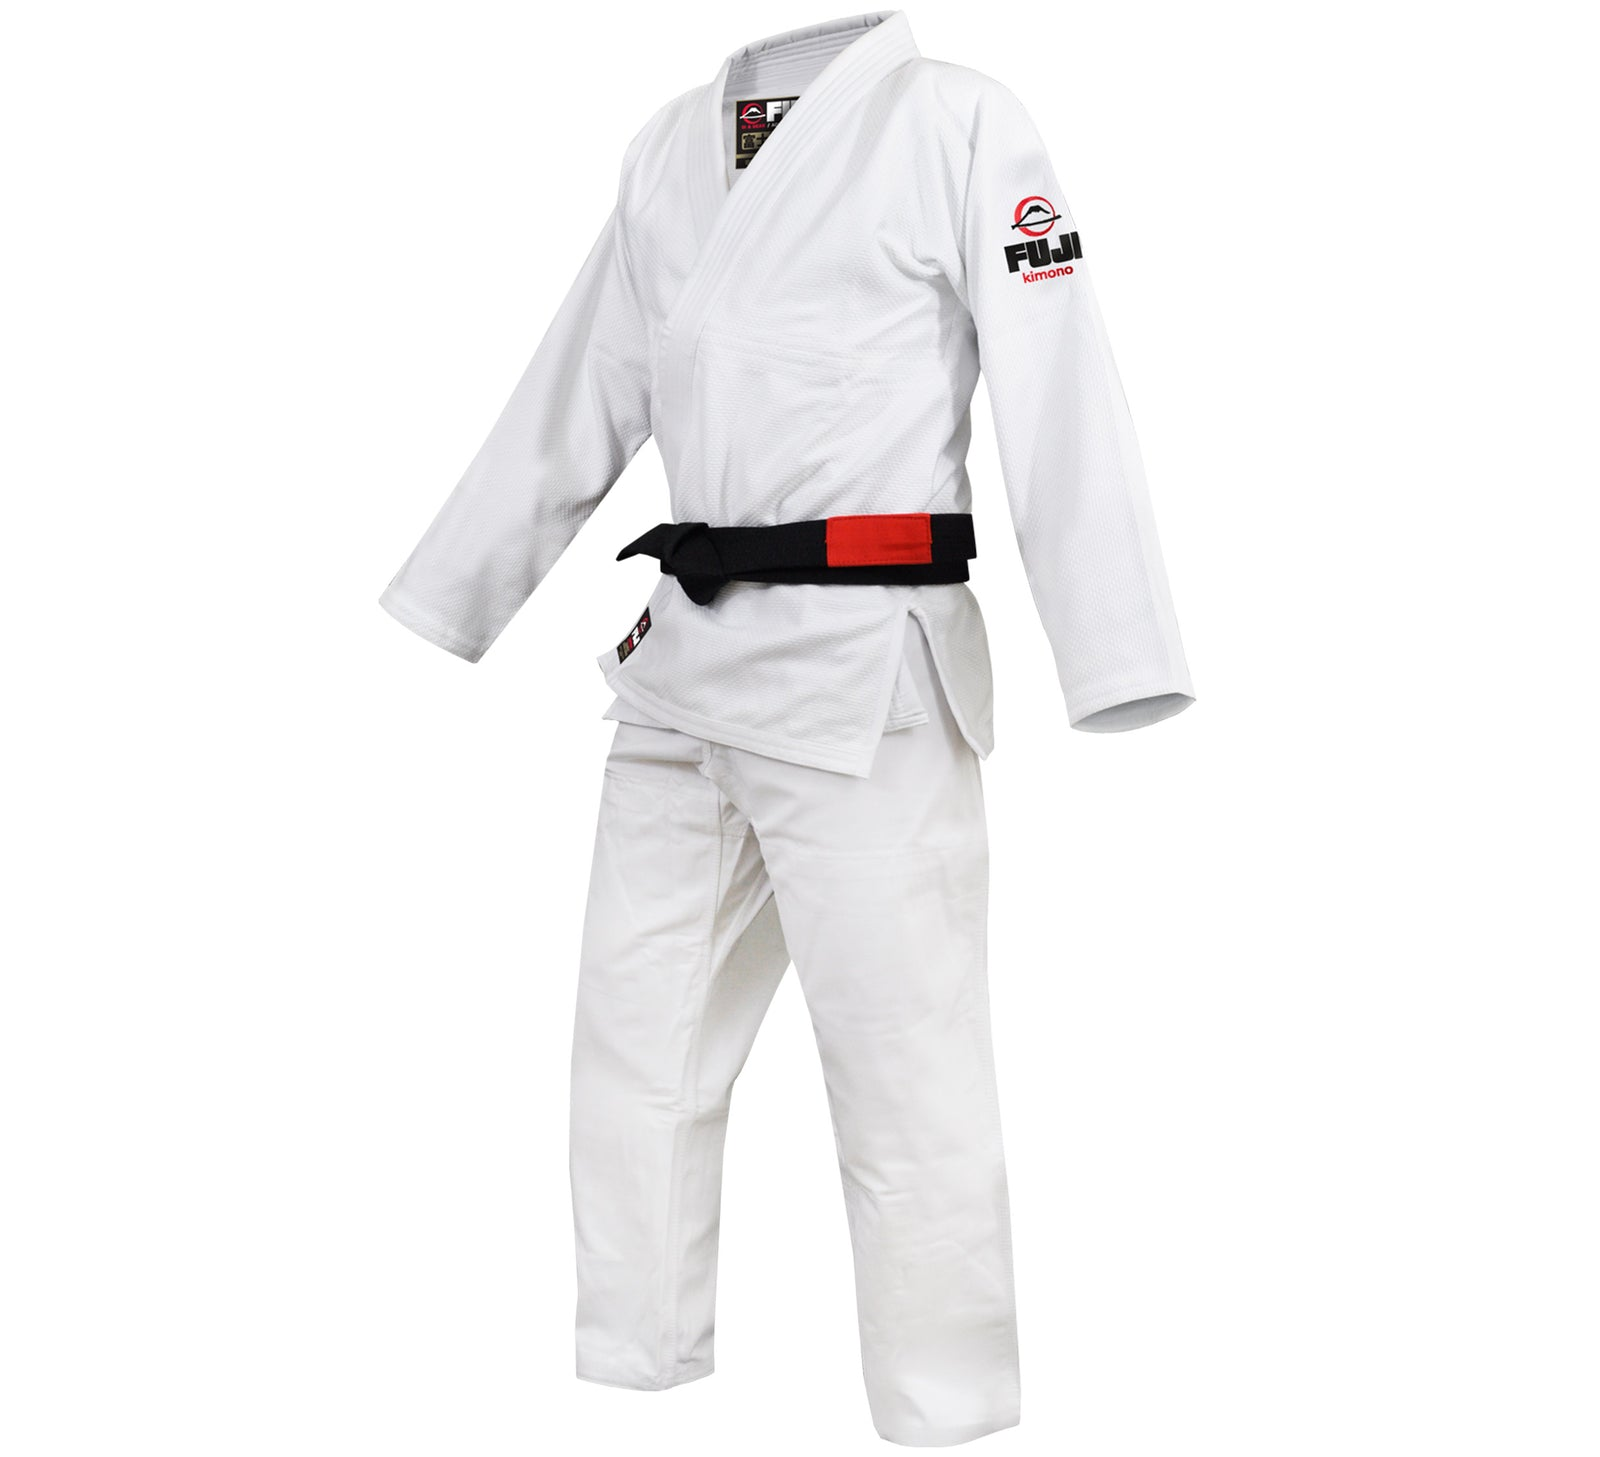 f25ebd8f1a5b All Around BJJ Gi – FUJI Sports